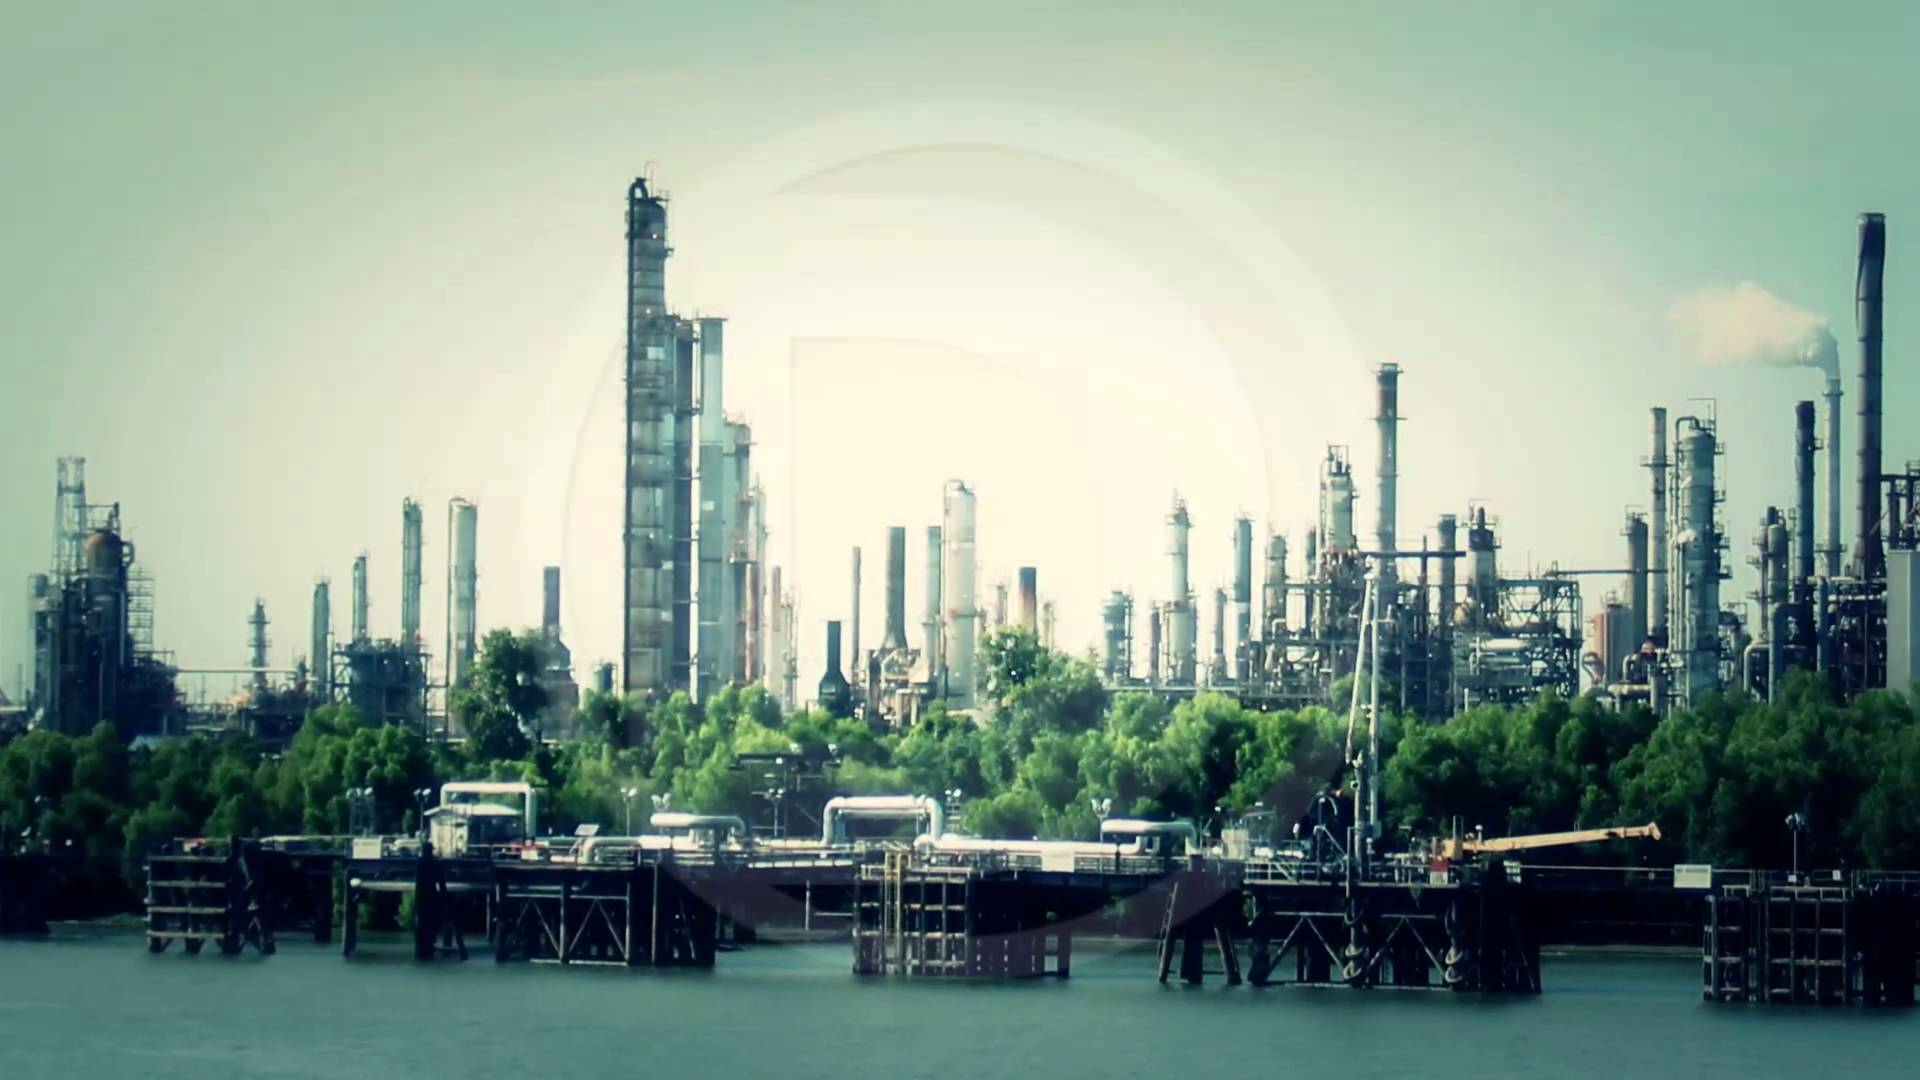 Good Wallpapers Iphone Download Oil Refinery Wallpaper Gallery